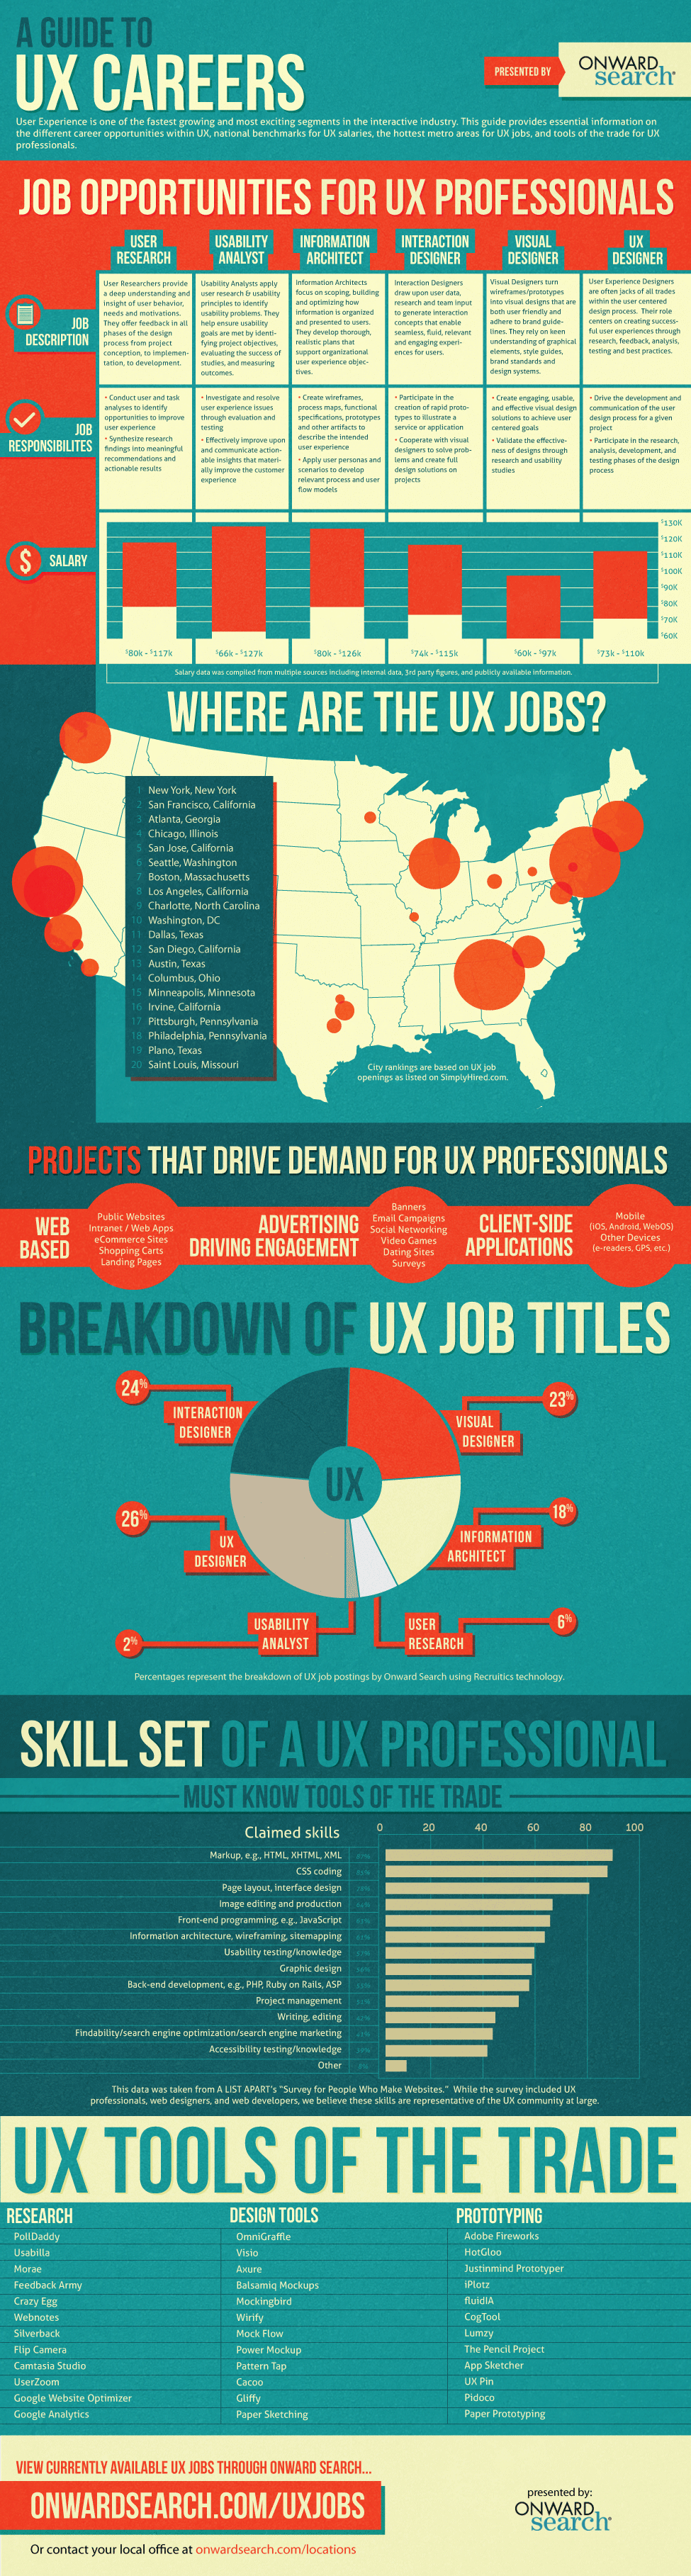 http://usabilitygal.files.wordpress.com/2012/02/ux-career-guide-infographic.png